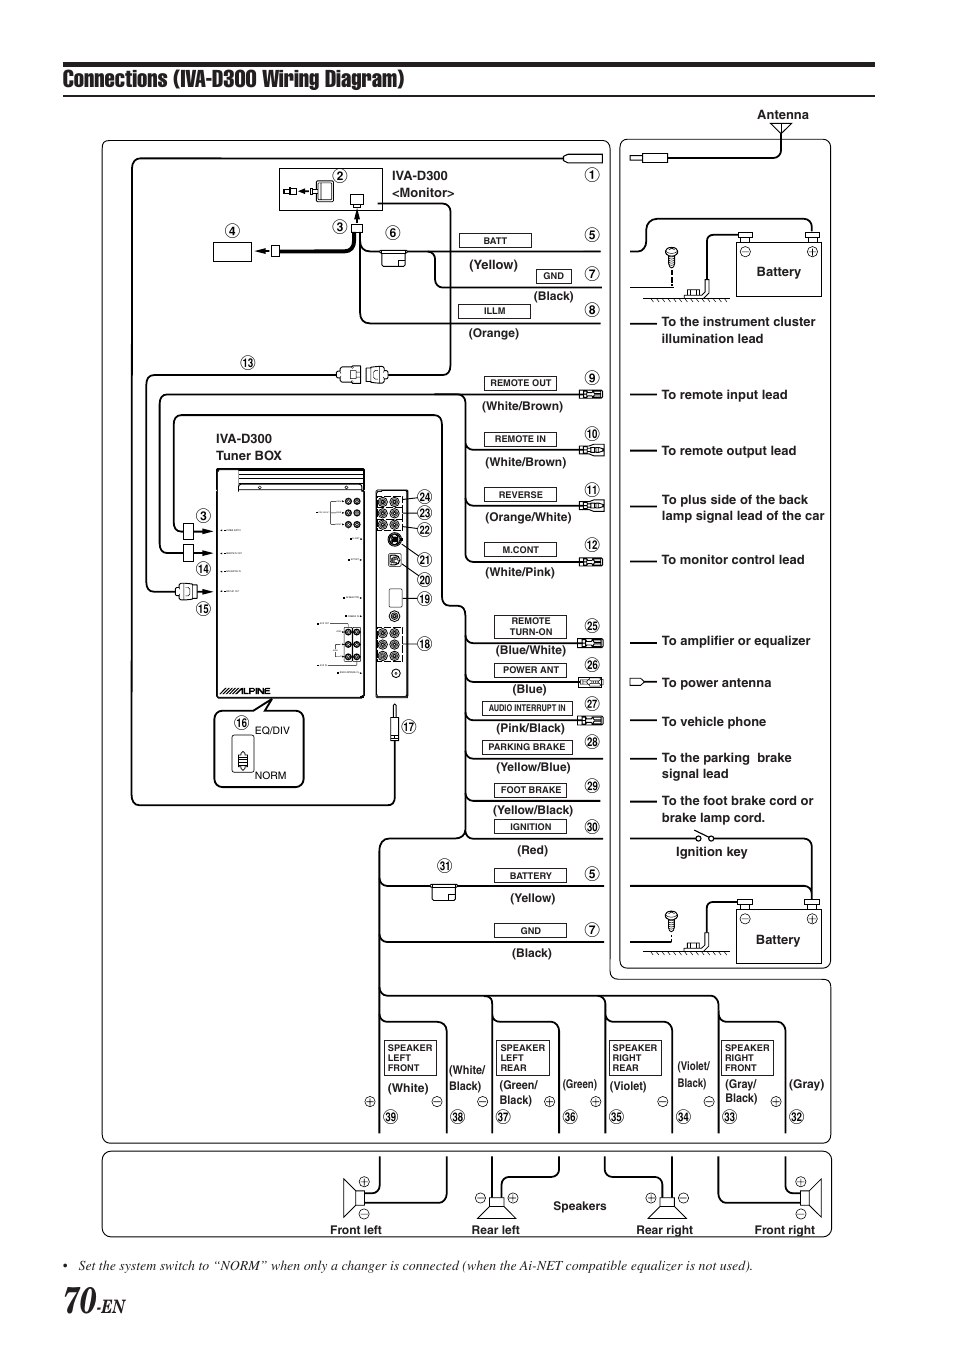 alpine iva d300 page72?resize\\\\\\\\\\\\\\\\\\\\\\\\\\\\\\\=665%2C938 case 1845c wiring diagram case 1845c thermostat \u2022 wiring diagrams case 430 skid steer wiring diagram at pacquiaovsvargaslive.co